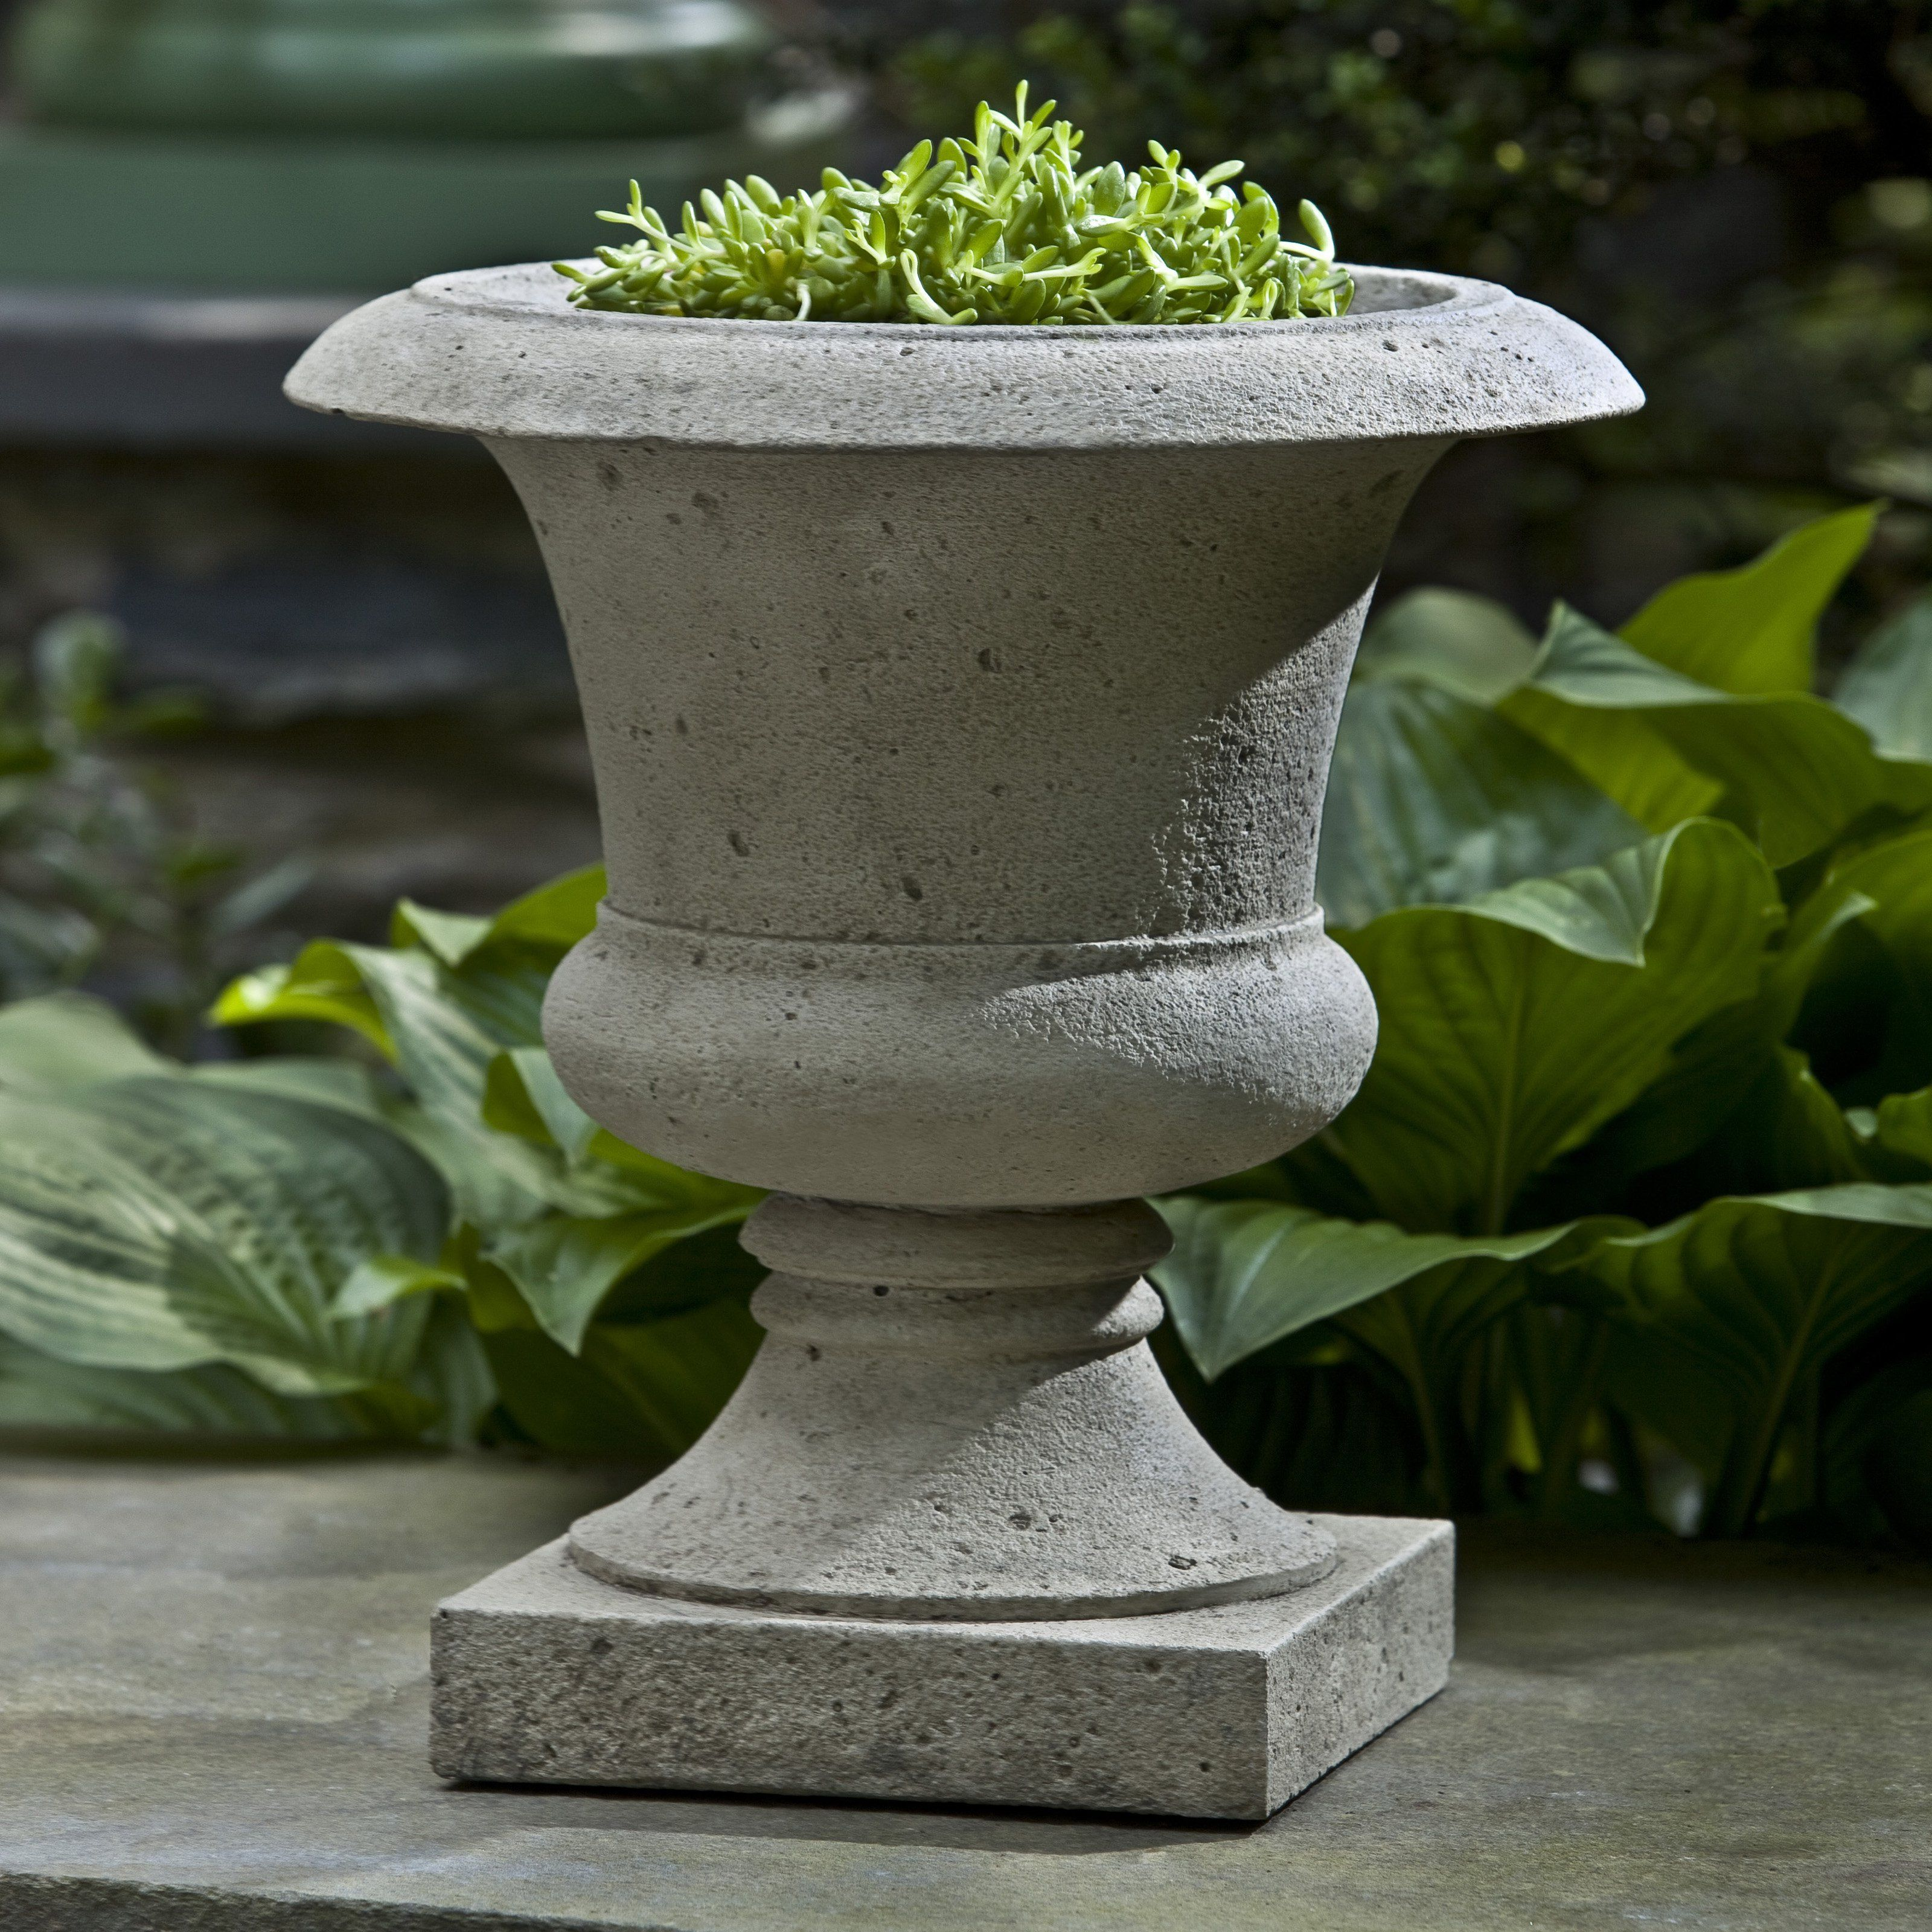 white and co stone quartz amazon urn antique l outdoors indoor dp inspired garden urns planter outdoor uk planters